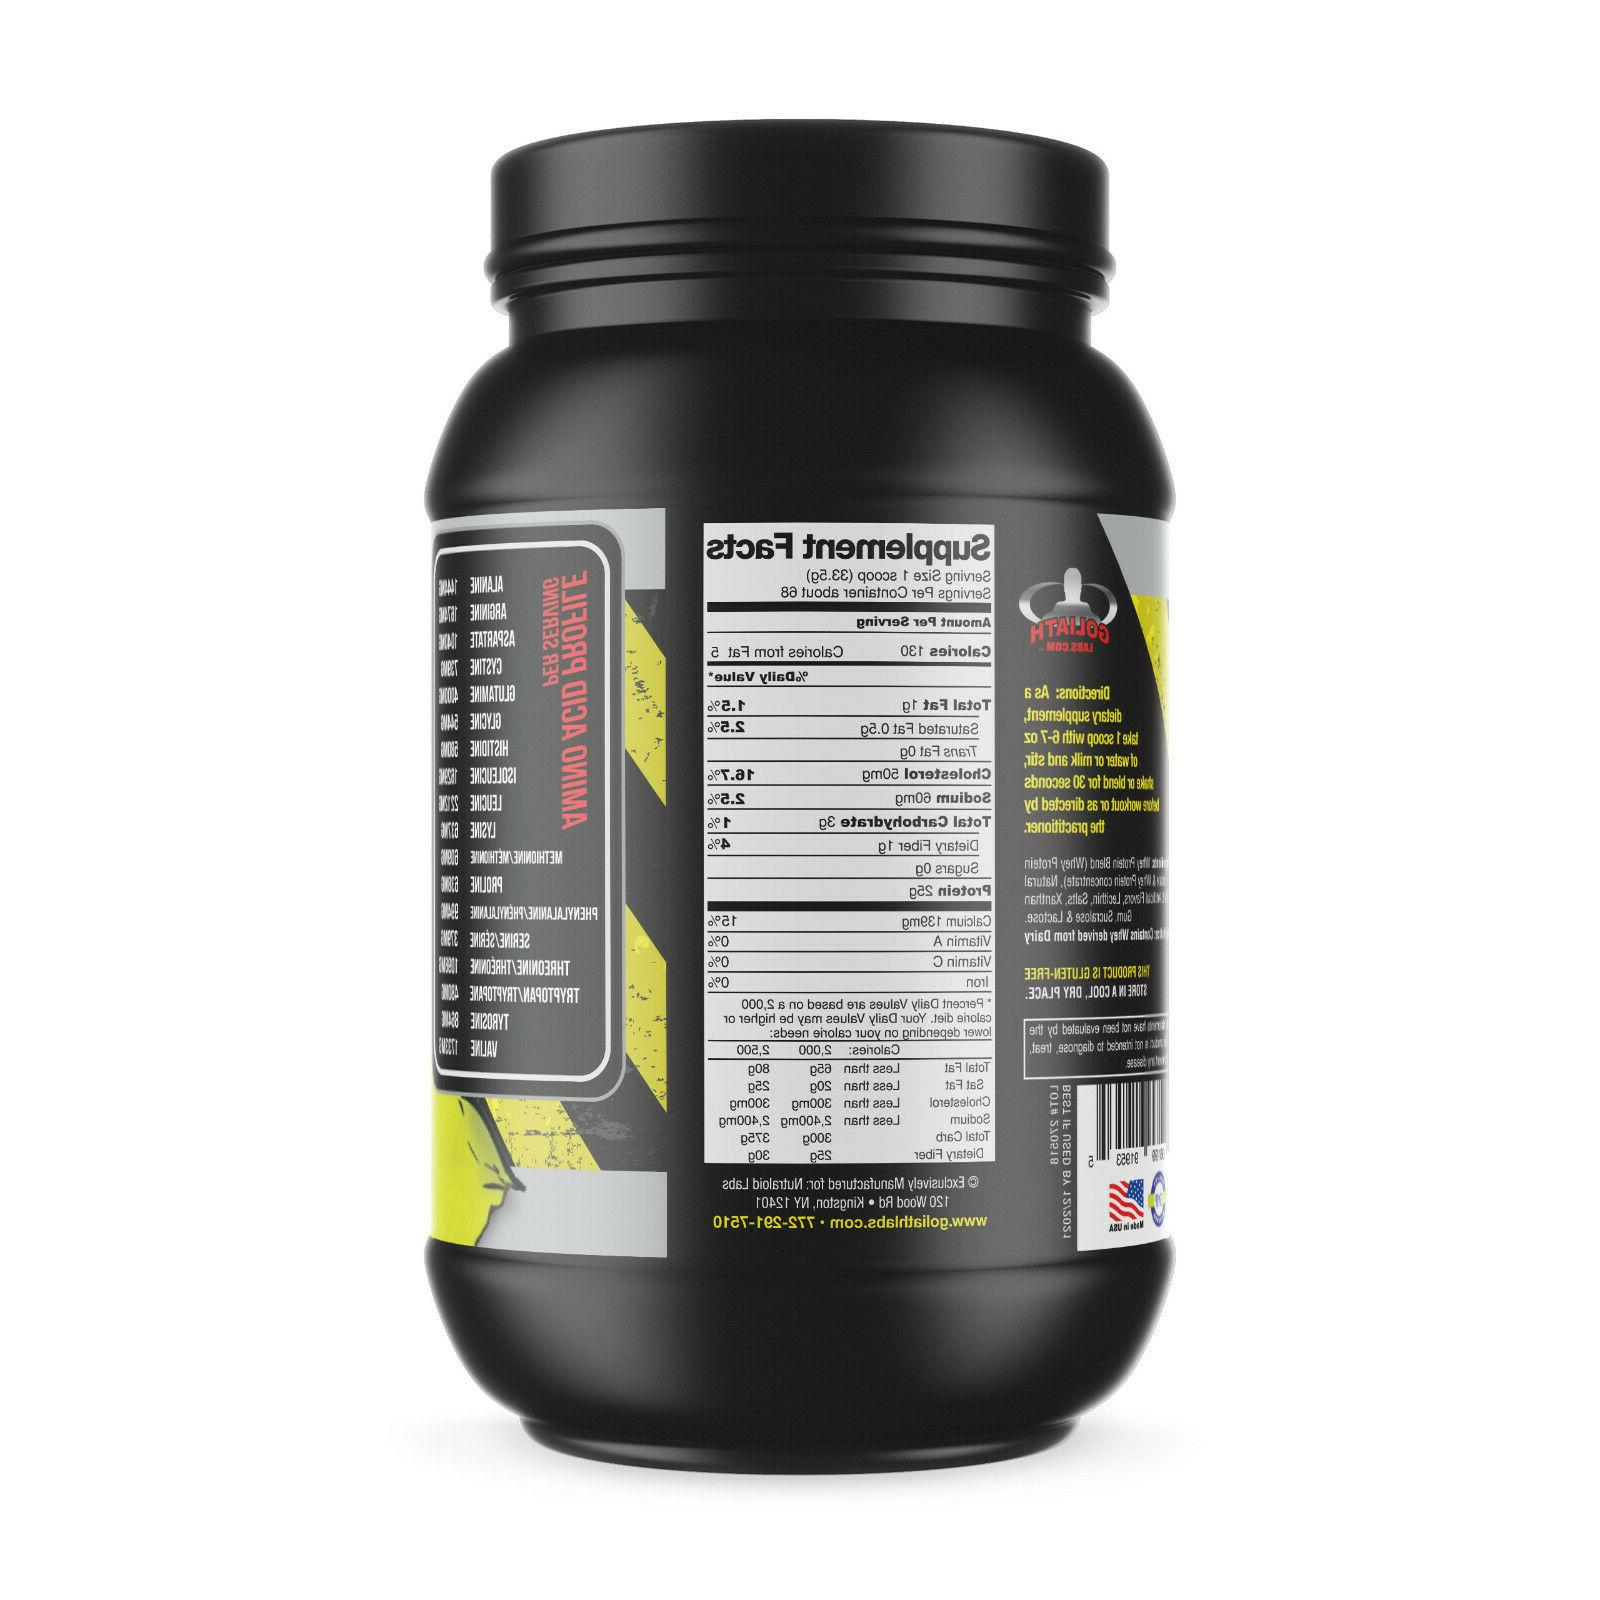 Colossal labs Powder 5lbs Monster Muscle isolate/blend 68